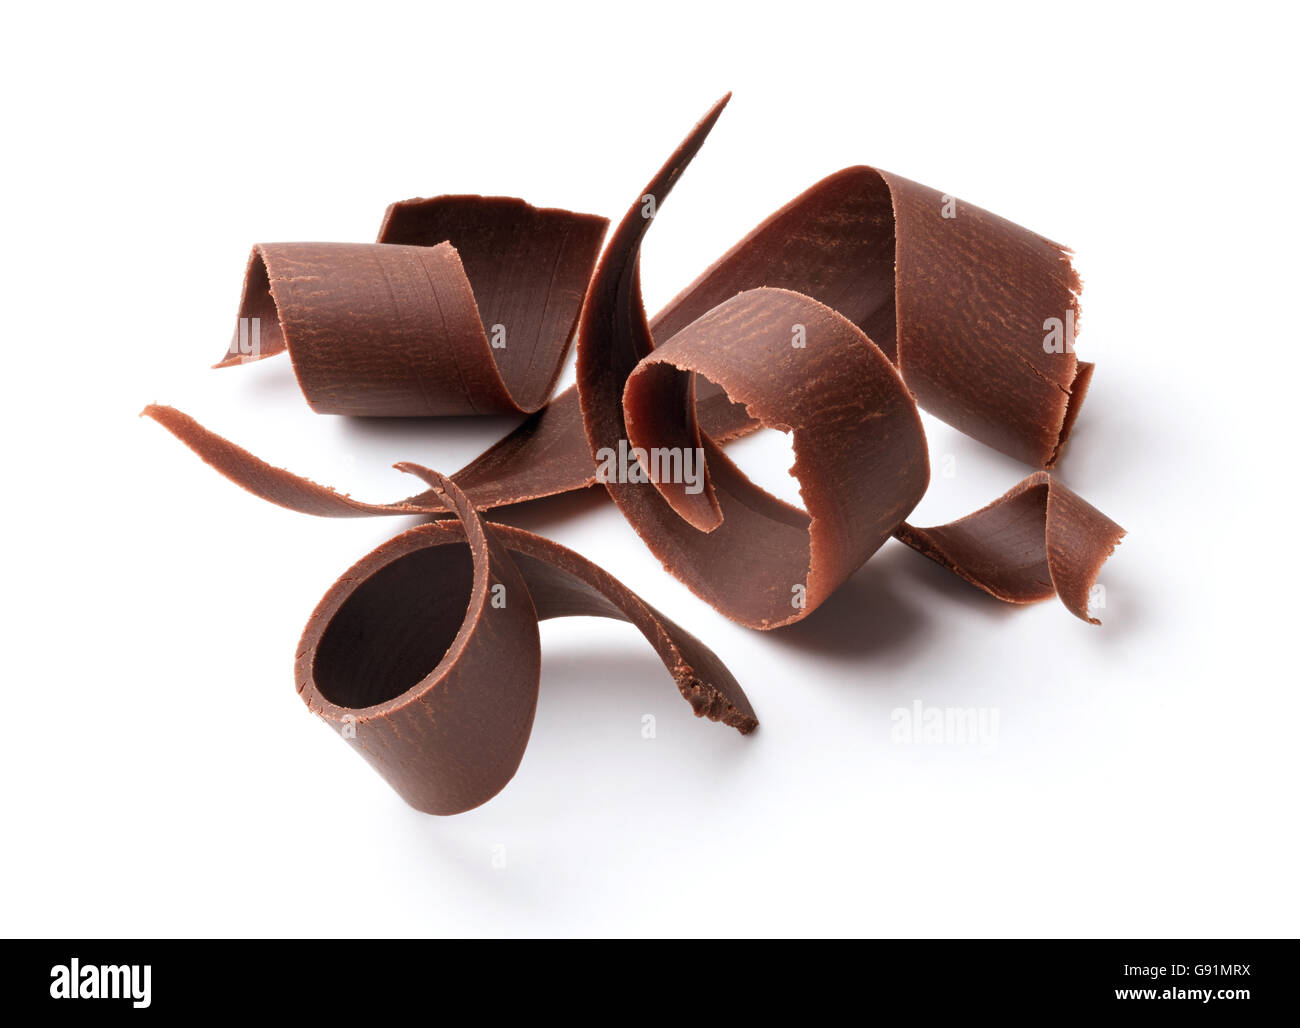 group of dark chocolate shavings isolated on white - Stock Image